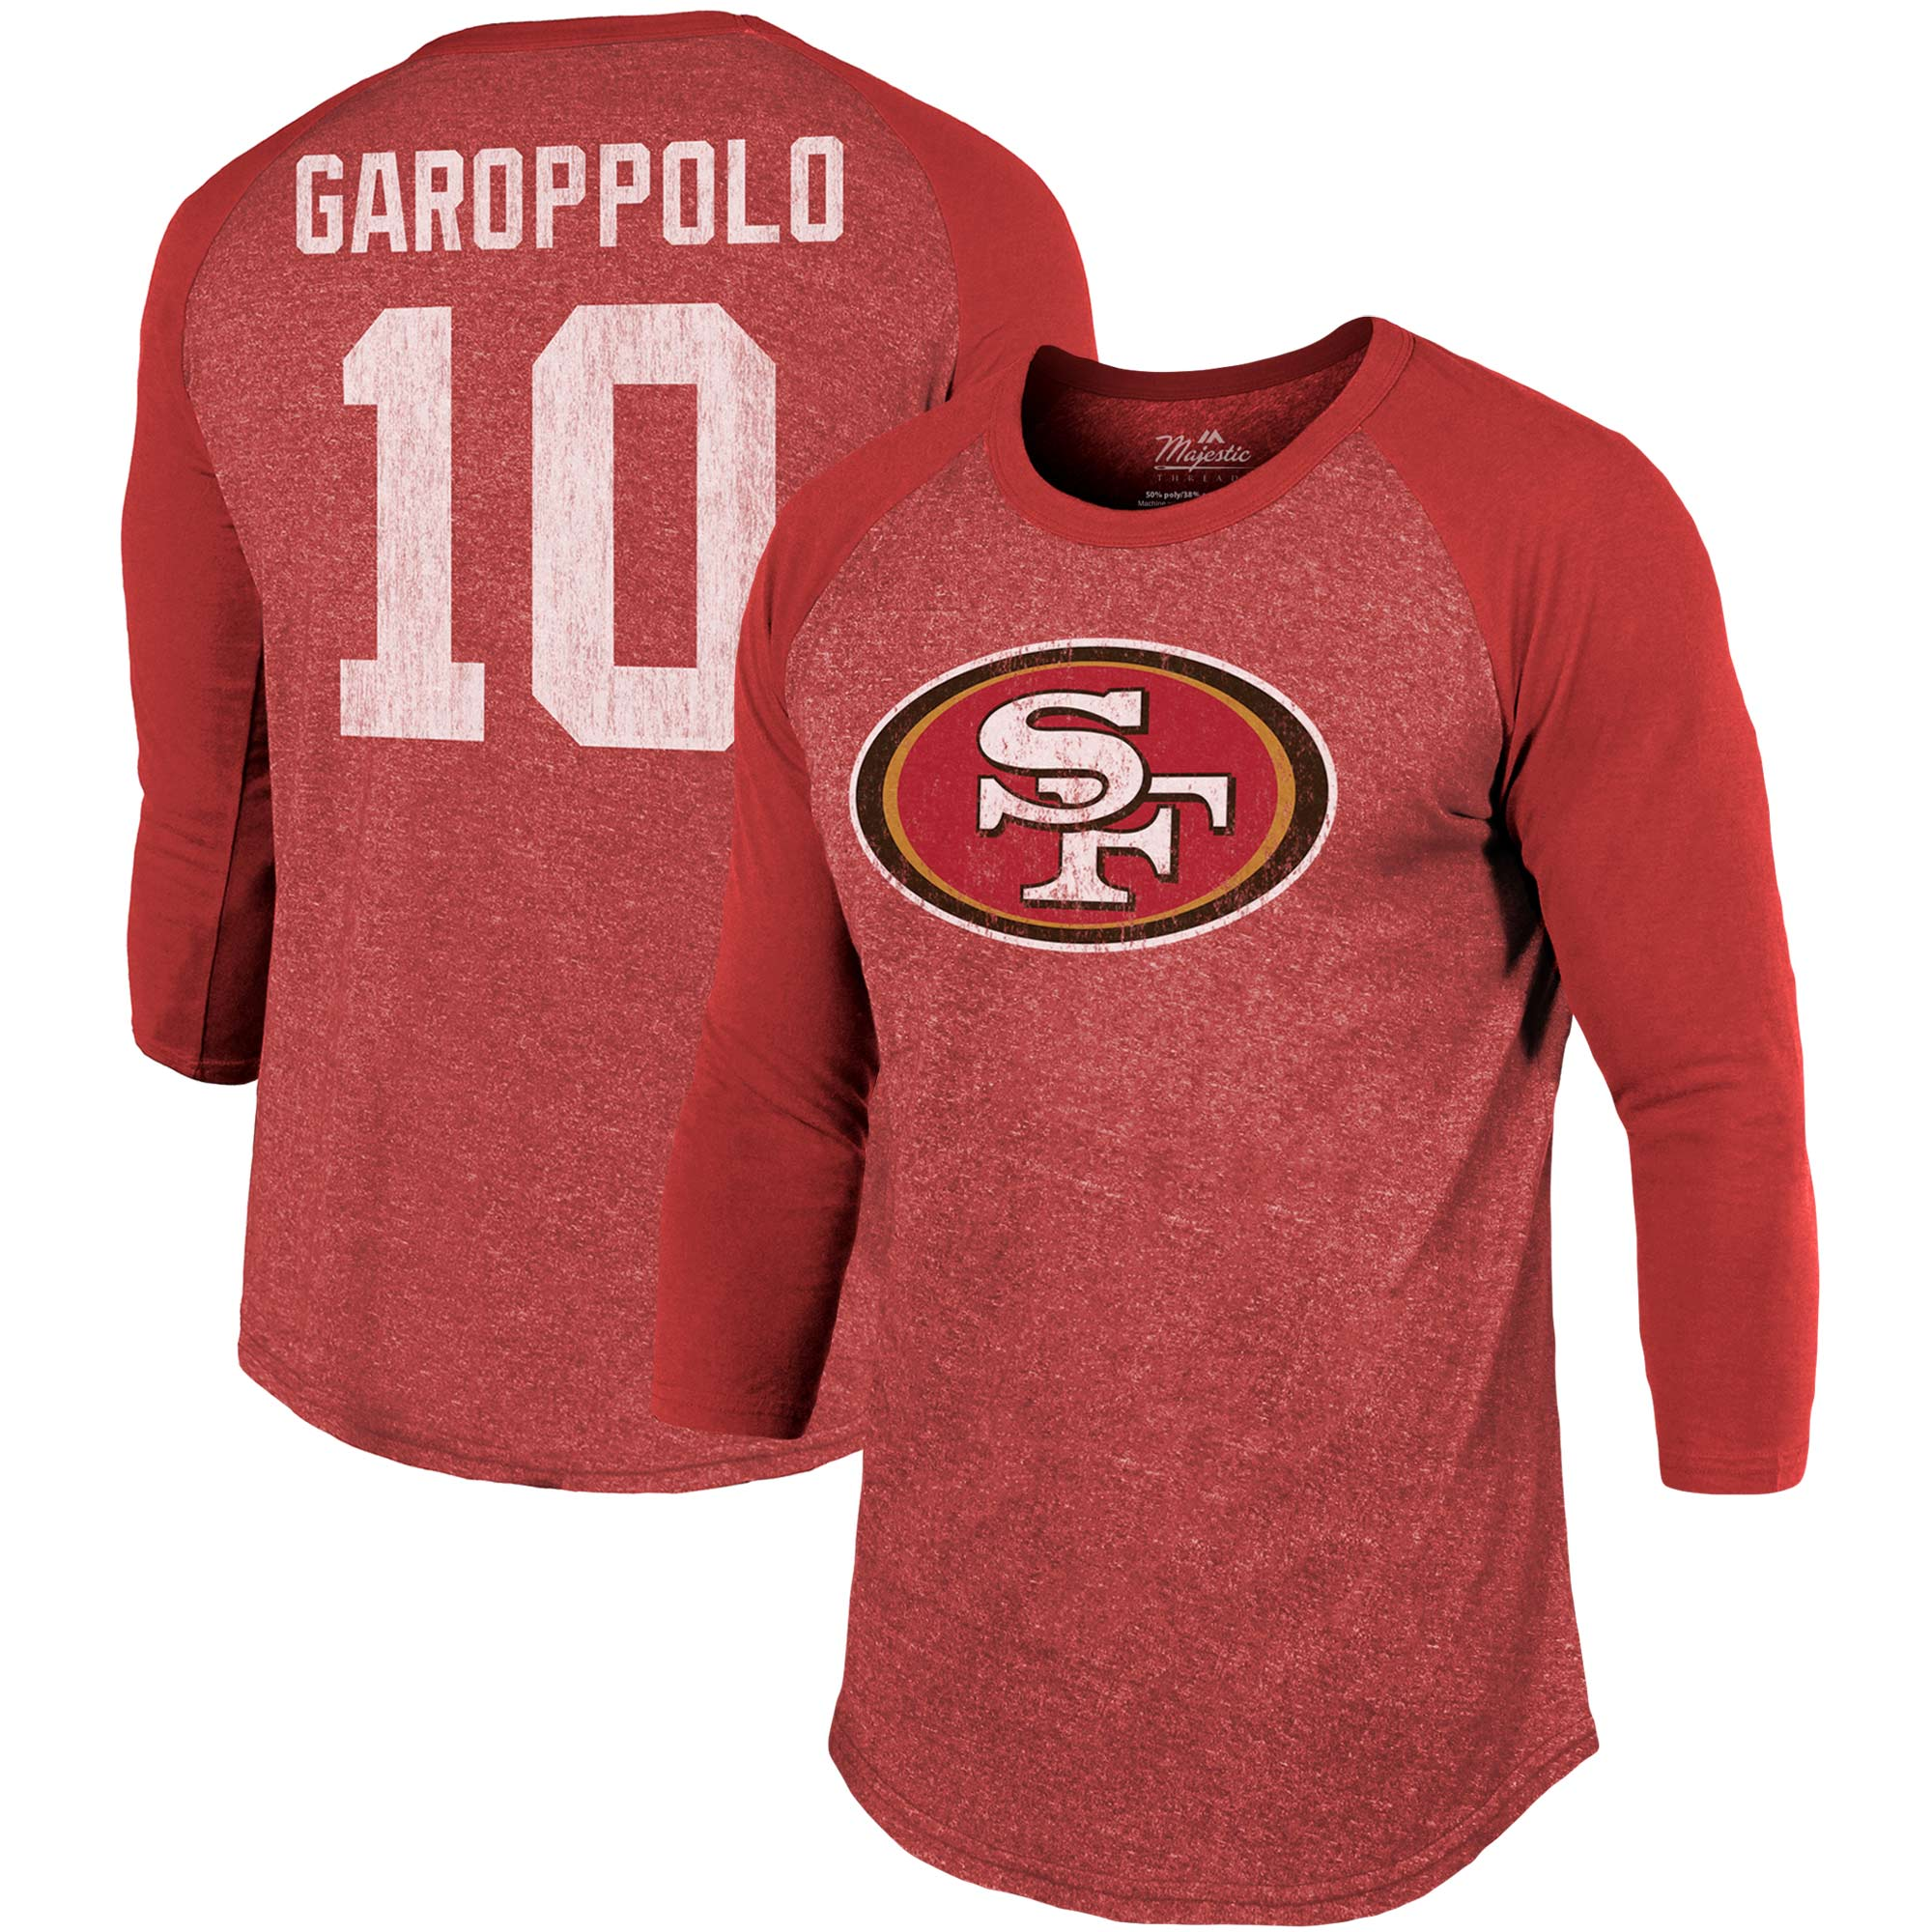 Jimmy Garoppolo San Francisco 49ers Majestic Threads Player Name & Number Tri-Blend 3/4-Sleeve Raglan T-Shirt - Scarlet